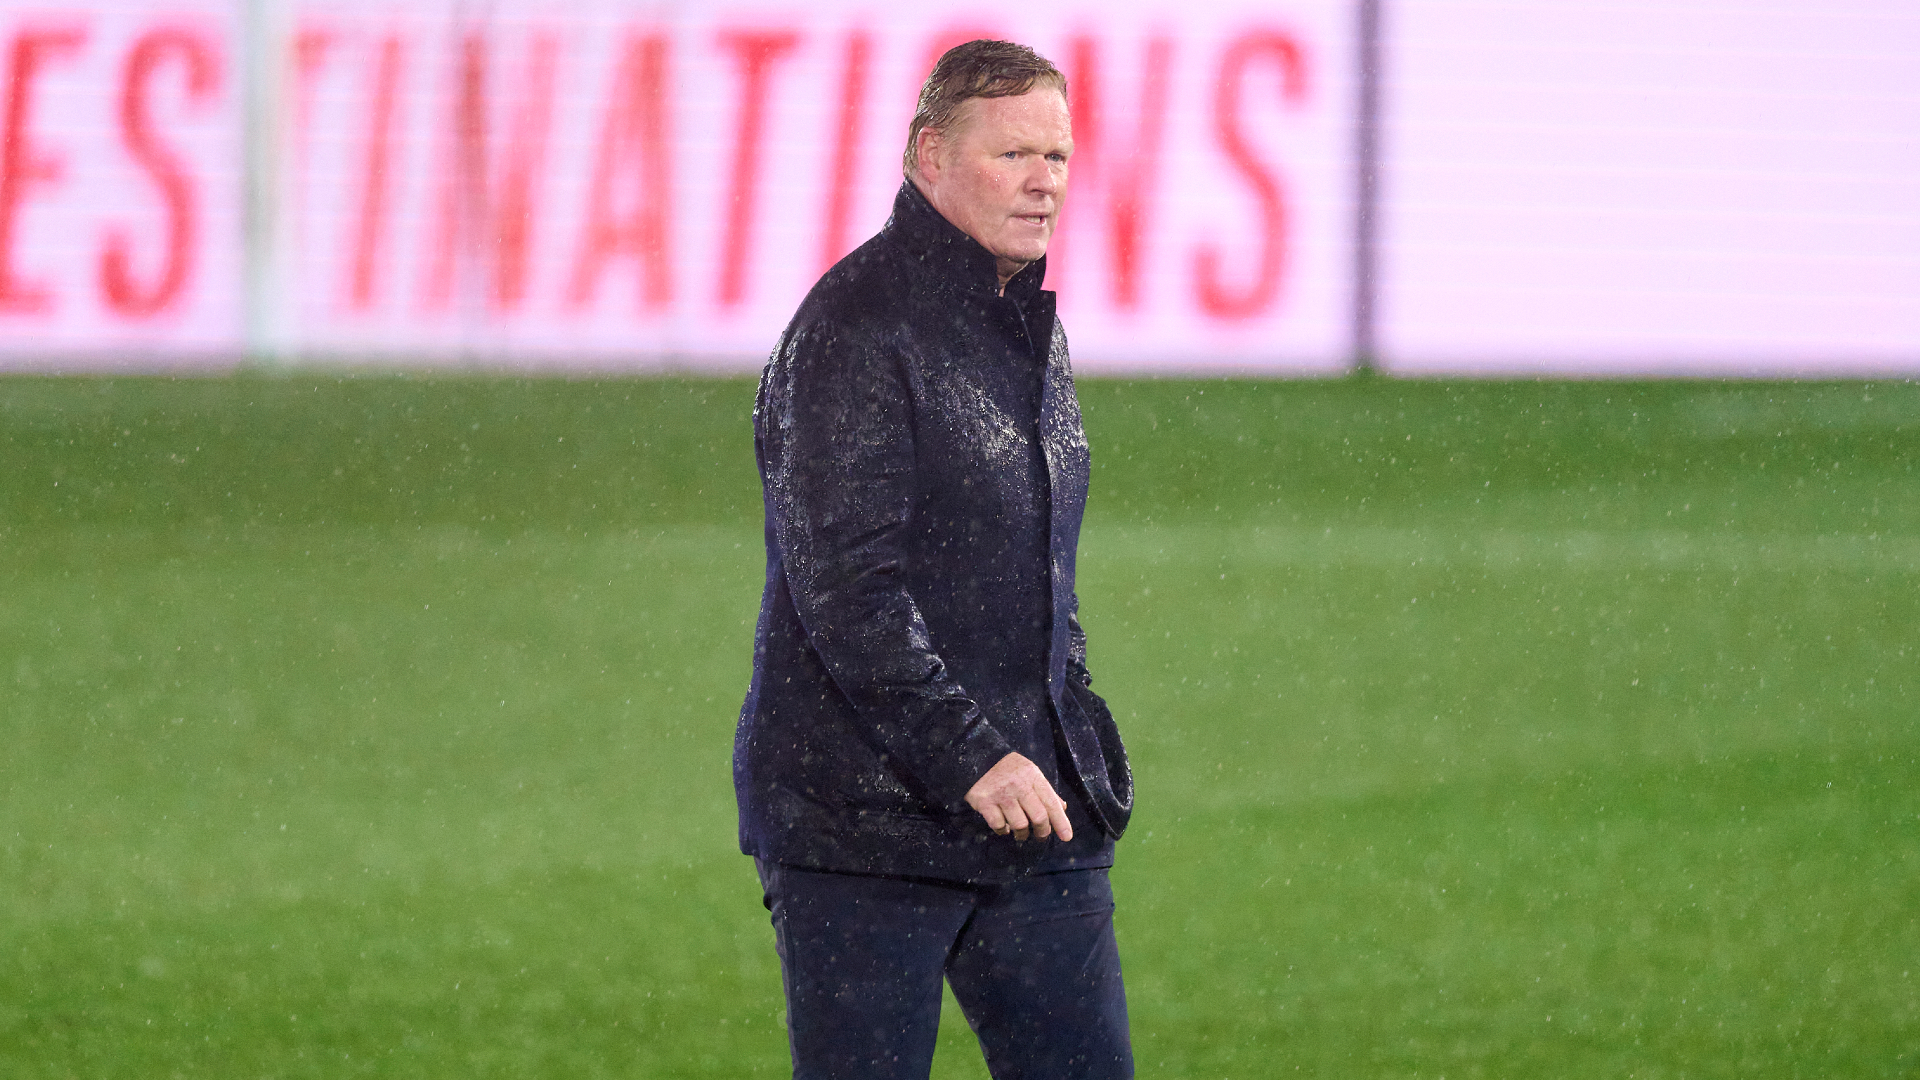 We have to accept it and shut up – Koeman unhappy after Barca denied 'clear penalty' against Madrid